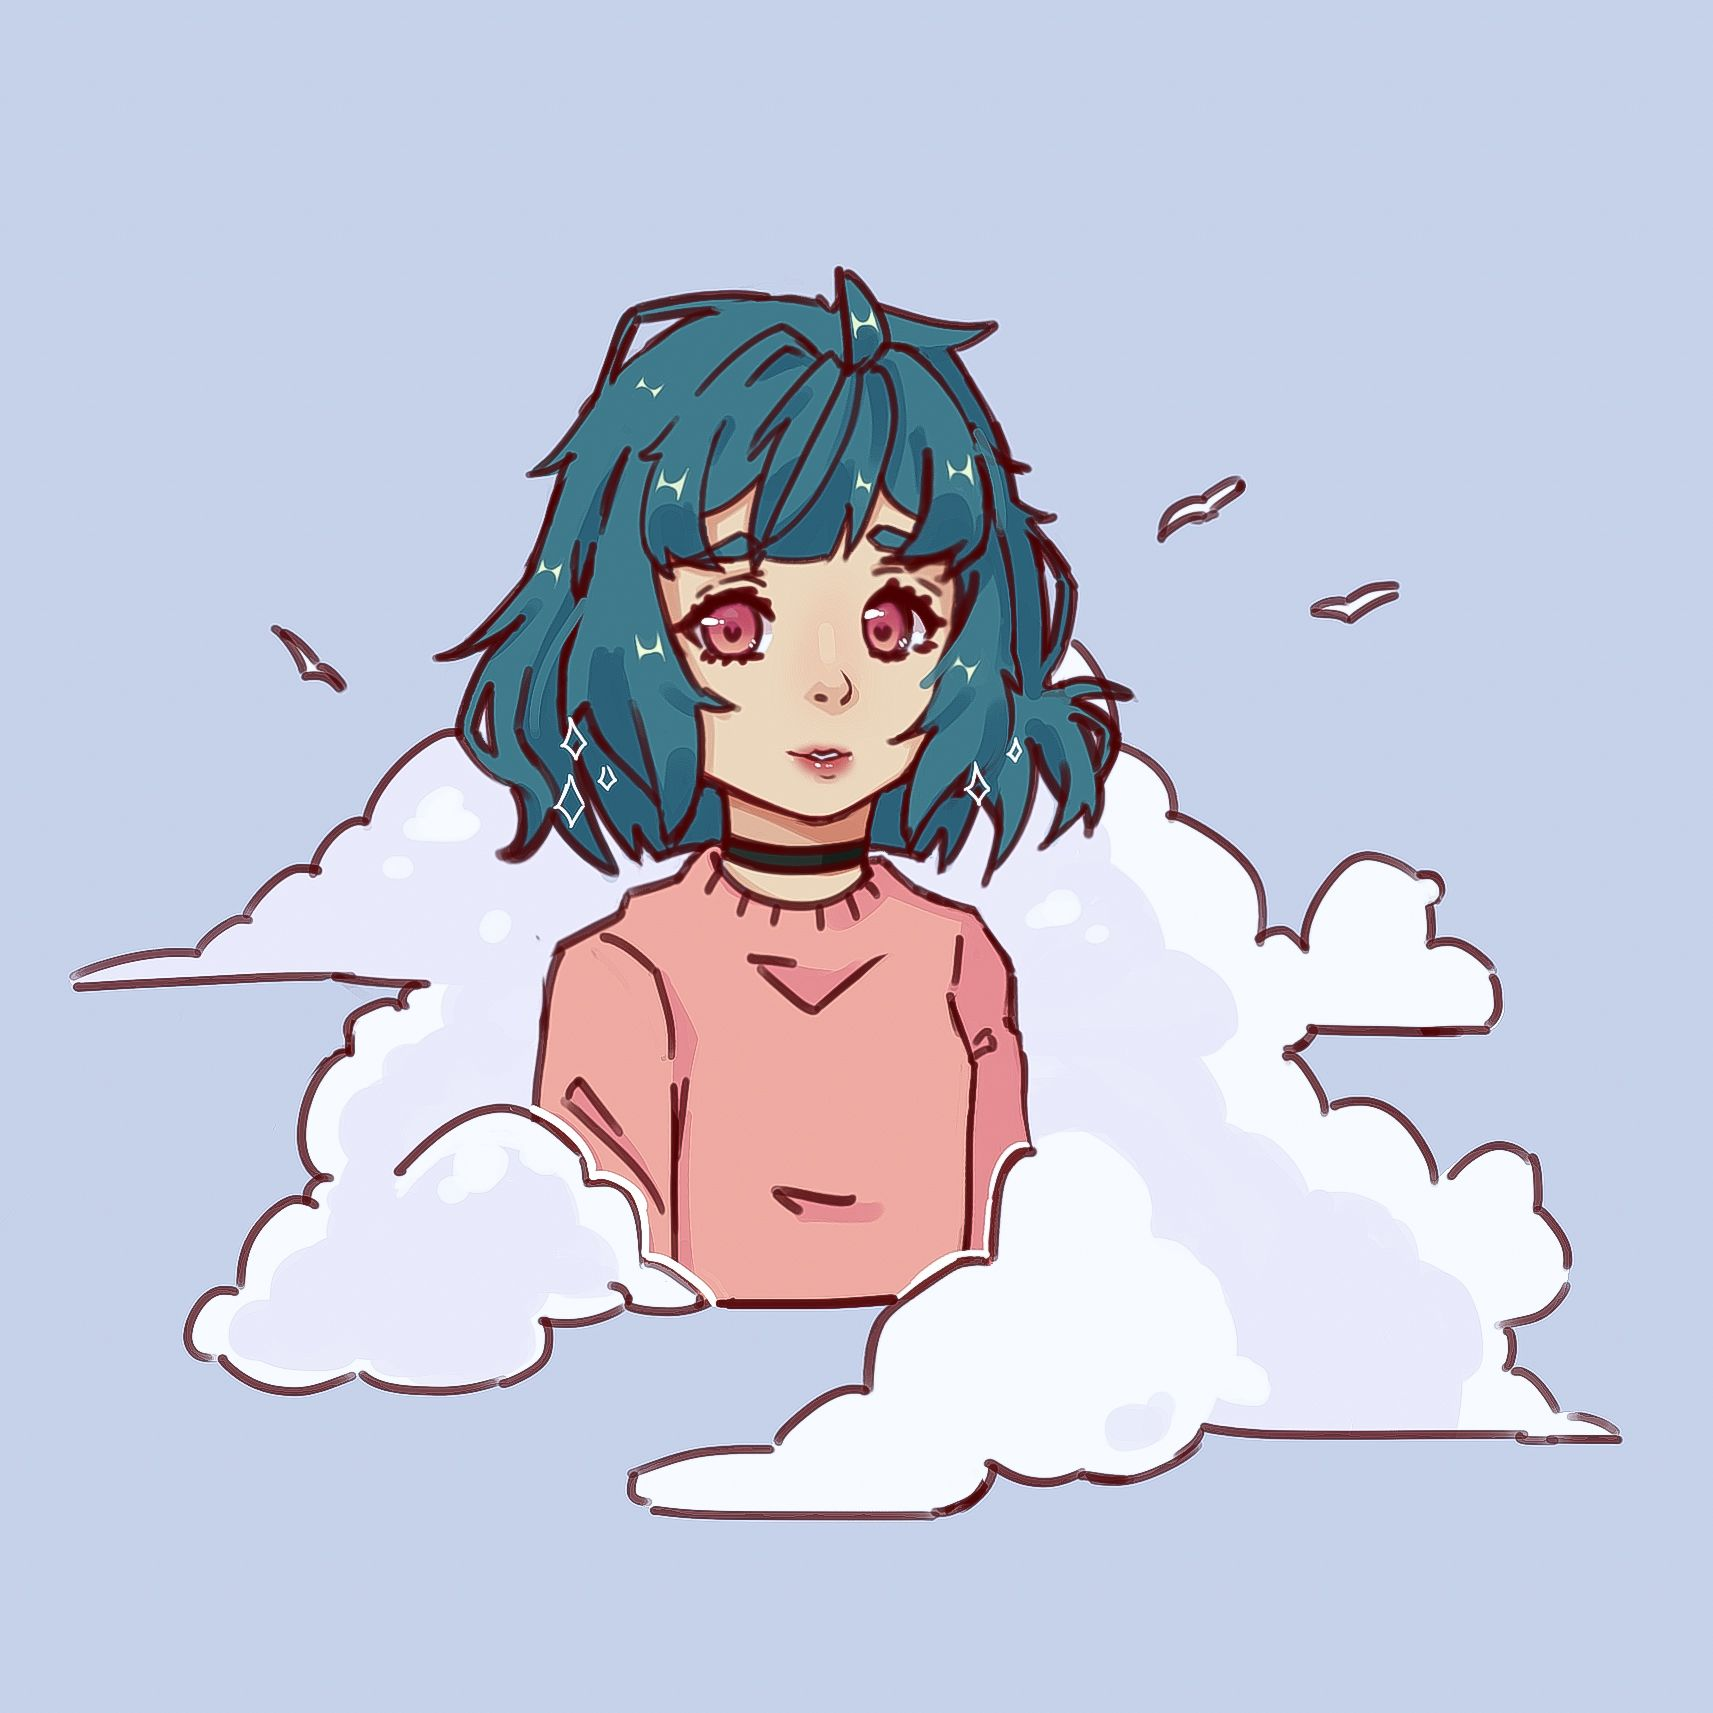 Pin On My Aesthetic Anime Drawings